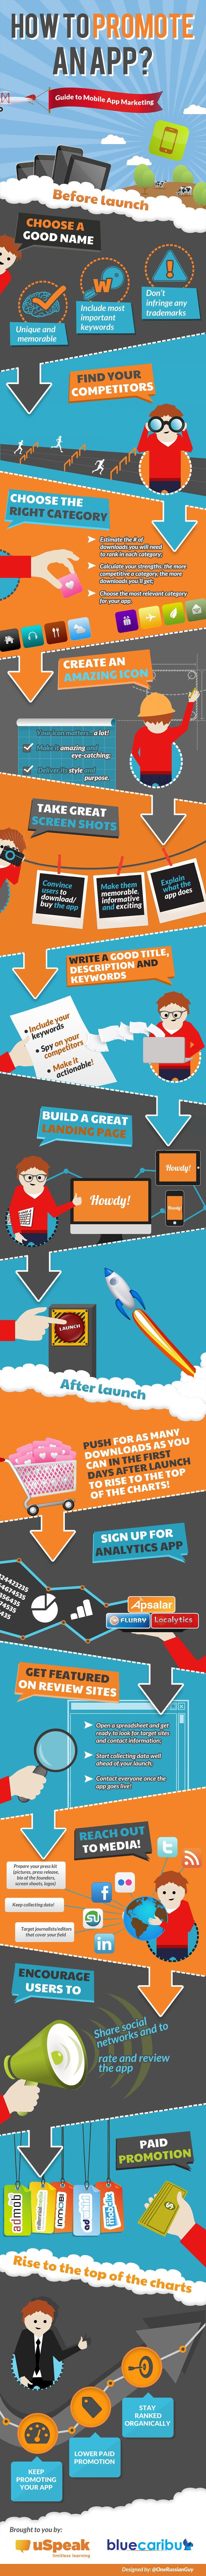 Want your app to stand out in a sea of others like it? Check out this infographic on how to promote an app!